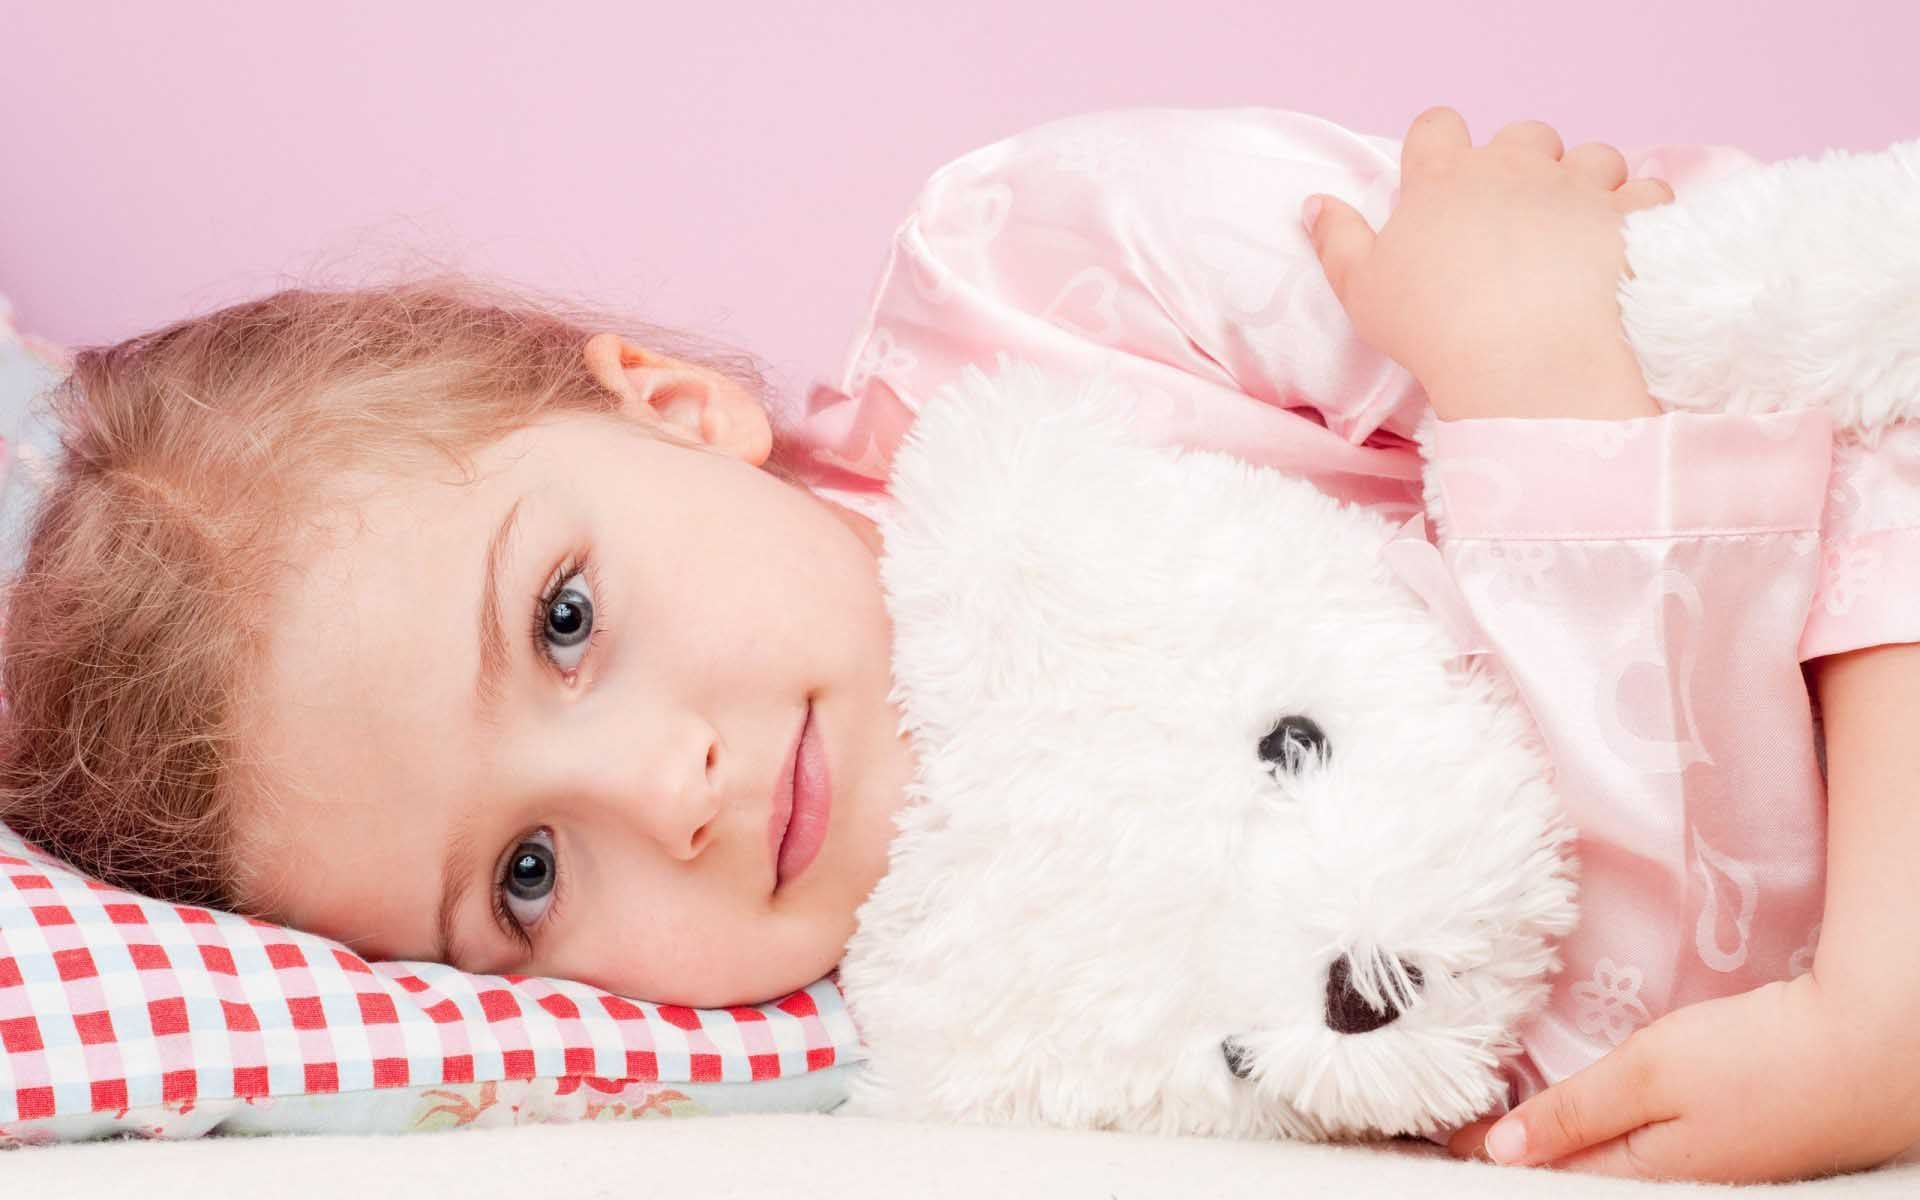 blonde child girl toy teddy bear wallpaper